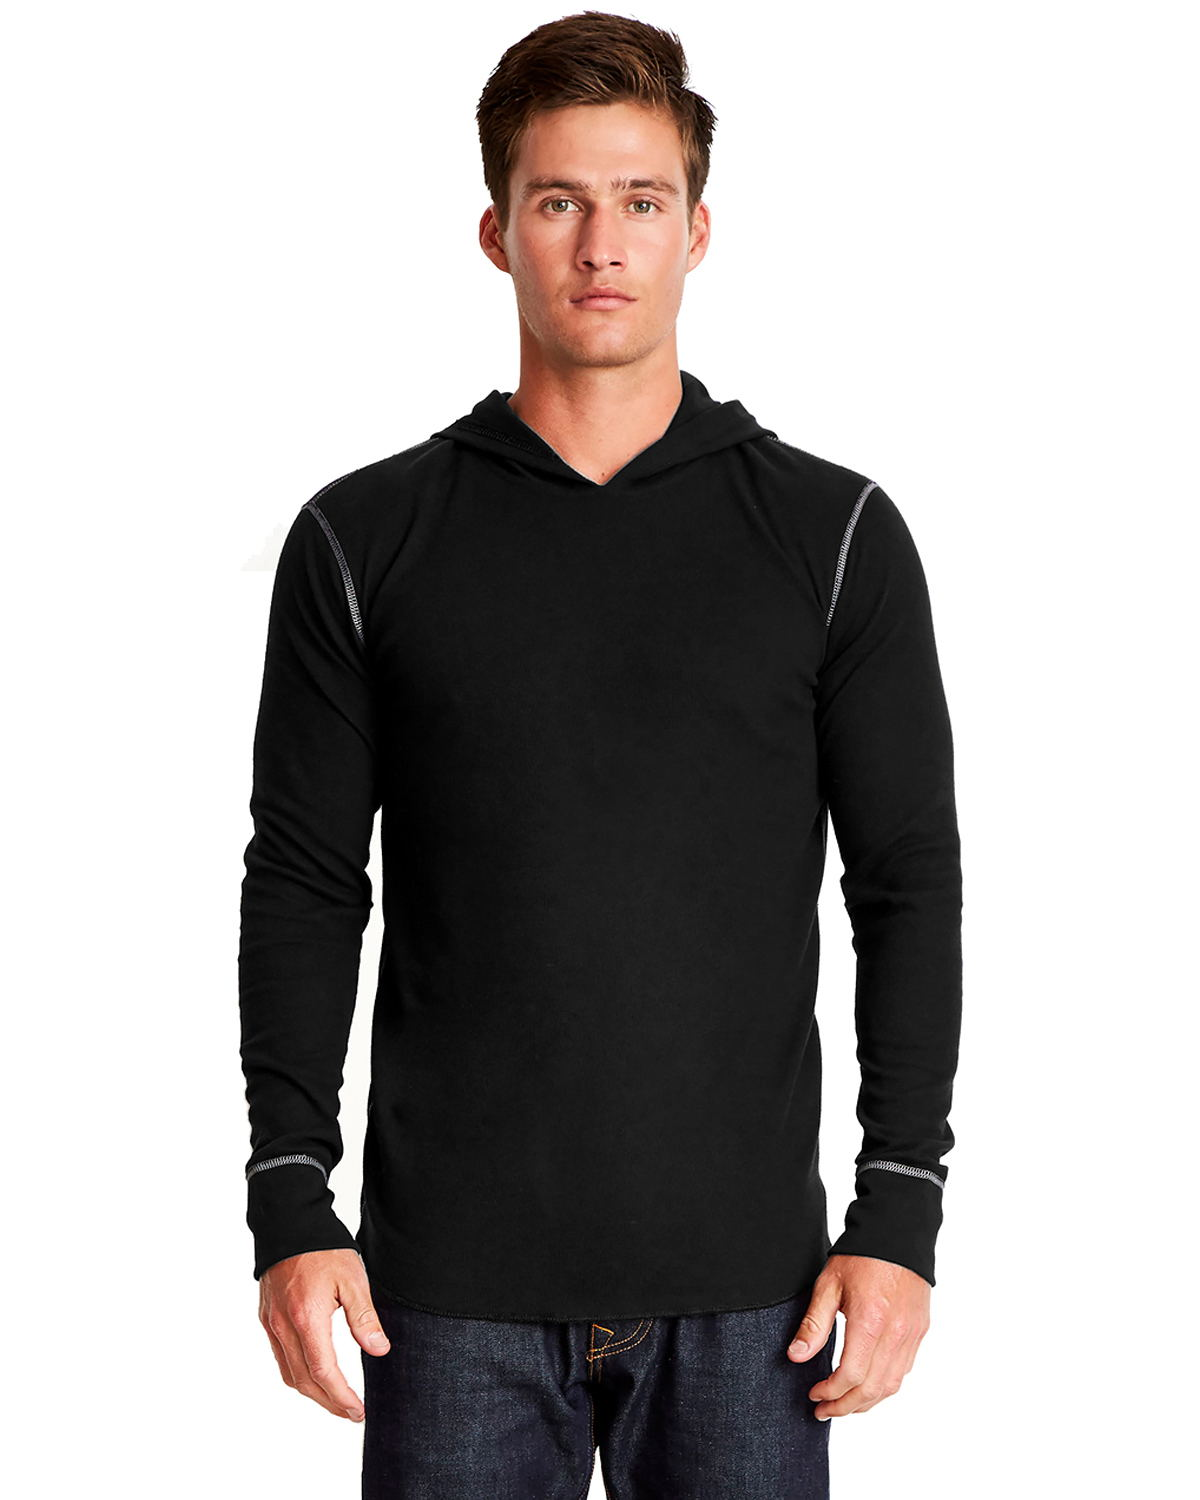 Next Level 8221 - Adult Thermal Hoody